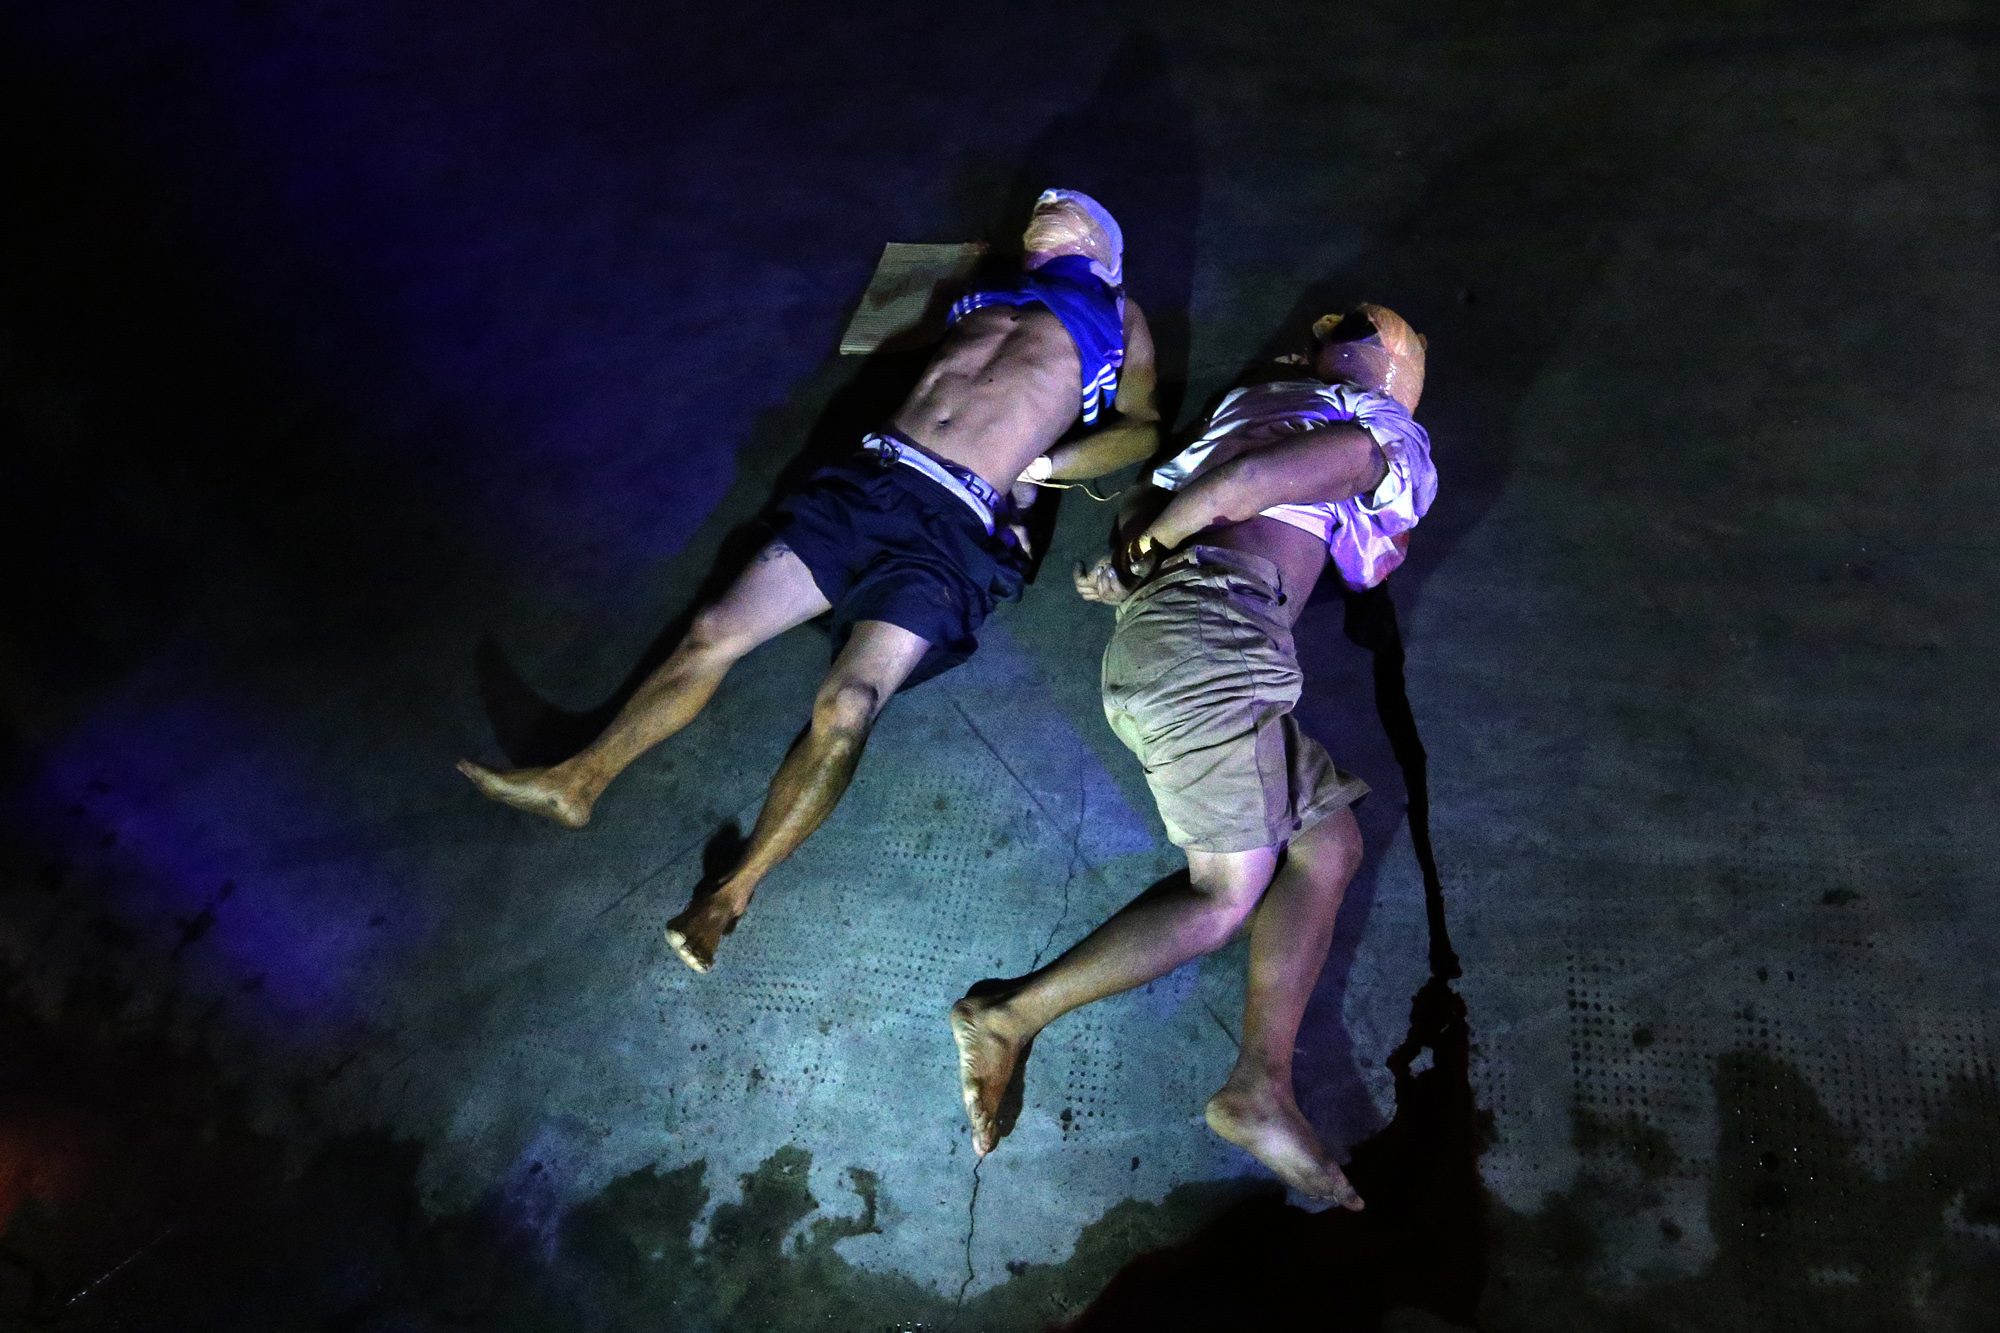 """Two victims of summary execution are dumped in front of Sta. Catalina College, Manila on October 4, 2016. A cardboard left near the victims' bodies called them drug pushers, holduppers and """"akyat bahay"""" gang members."""